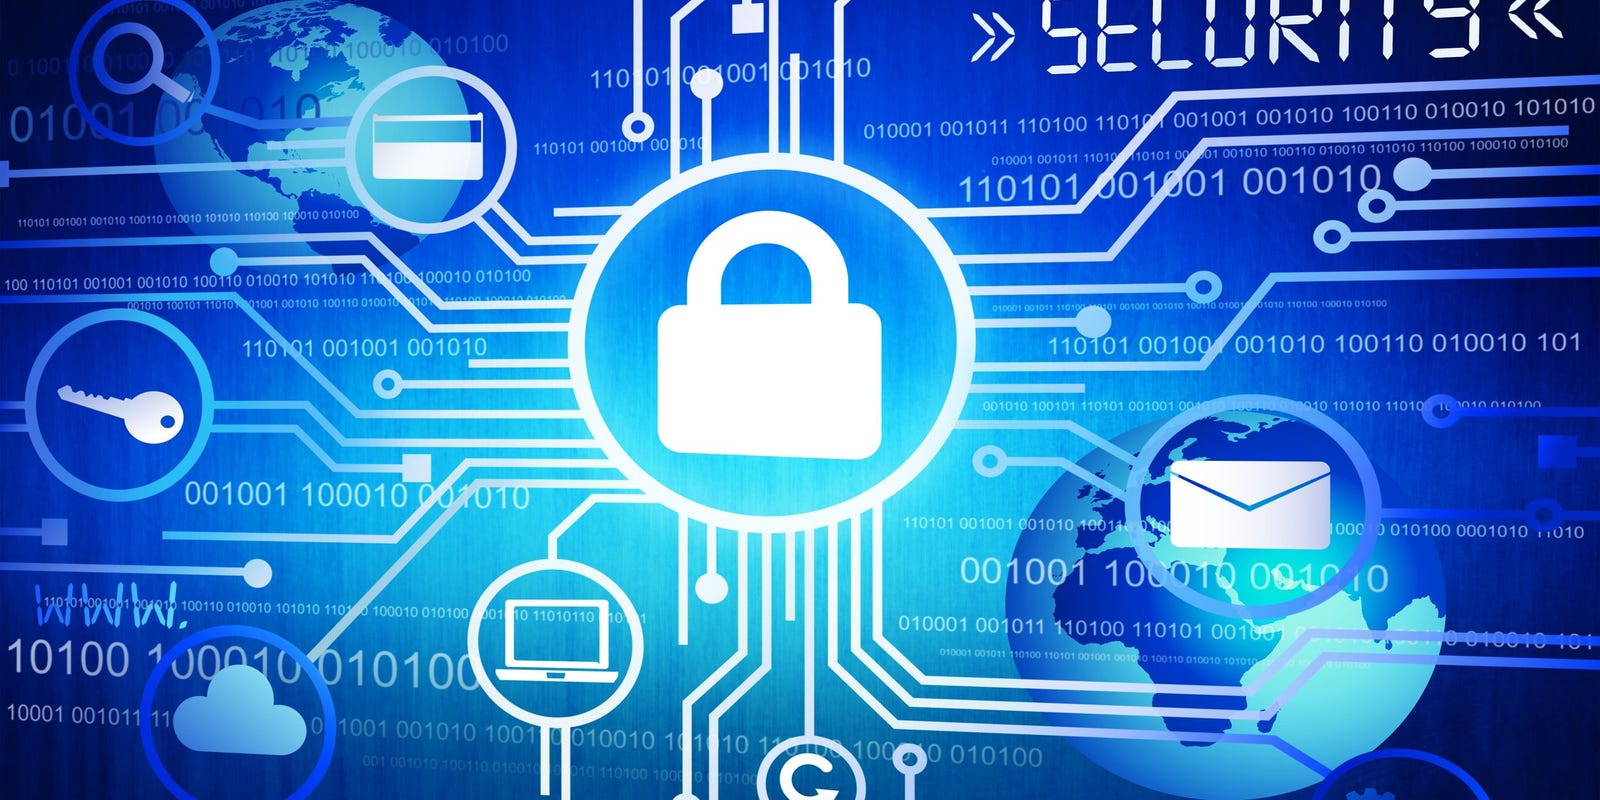 5 free downloads to keep your PC or Mac secure